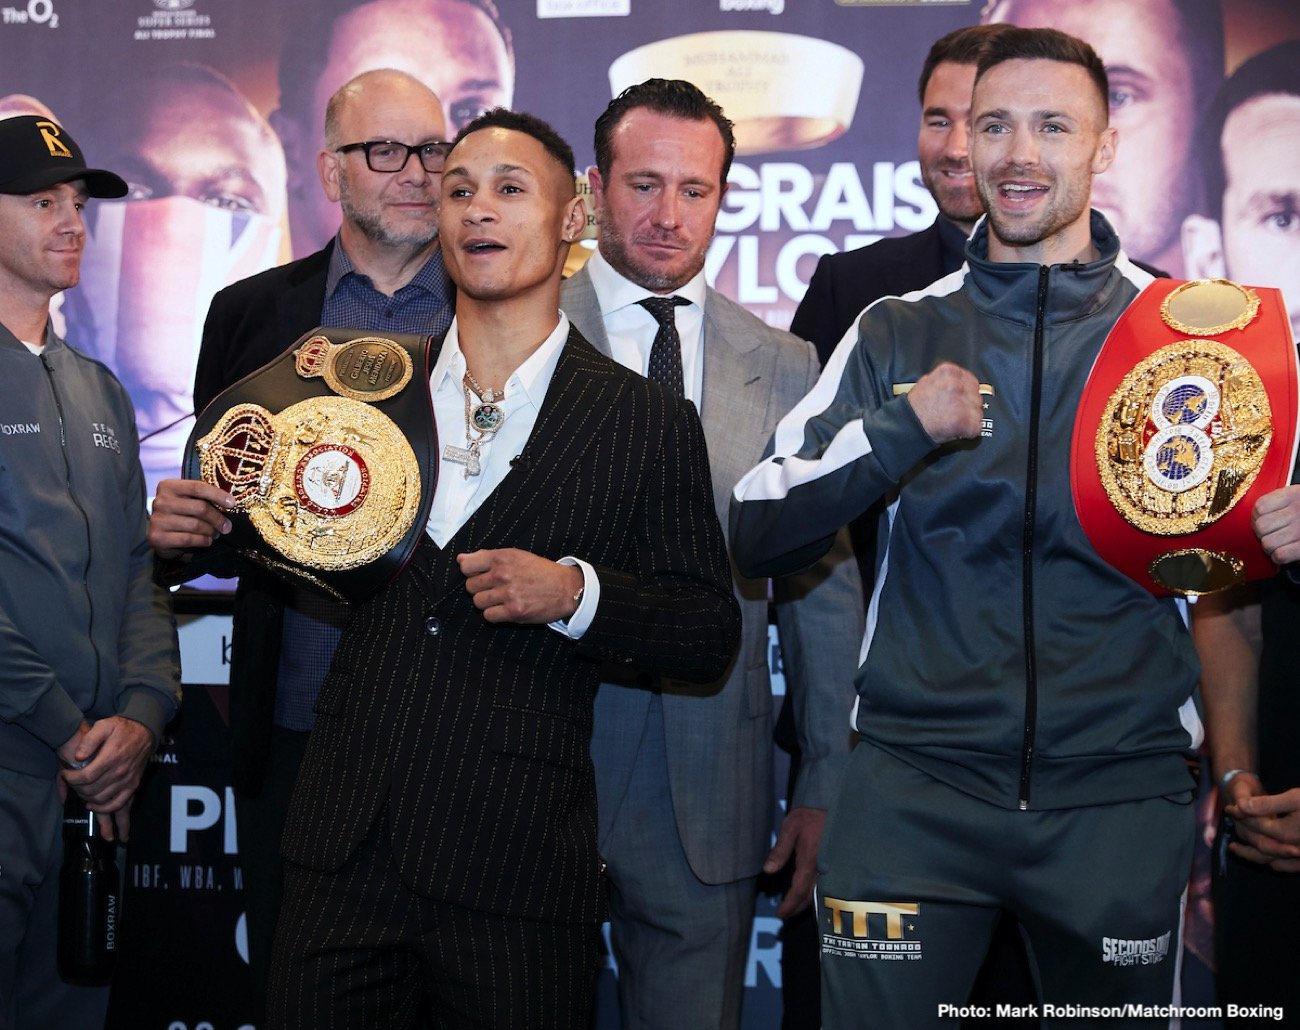 Prograis and Taylor face-to-face at fiery final press conference